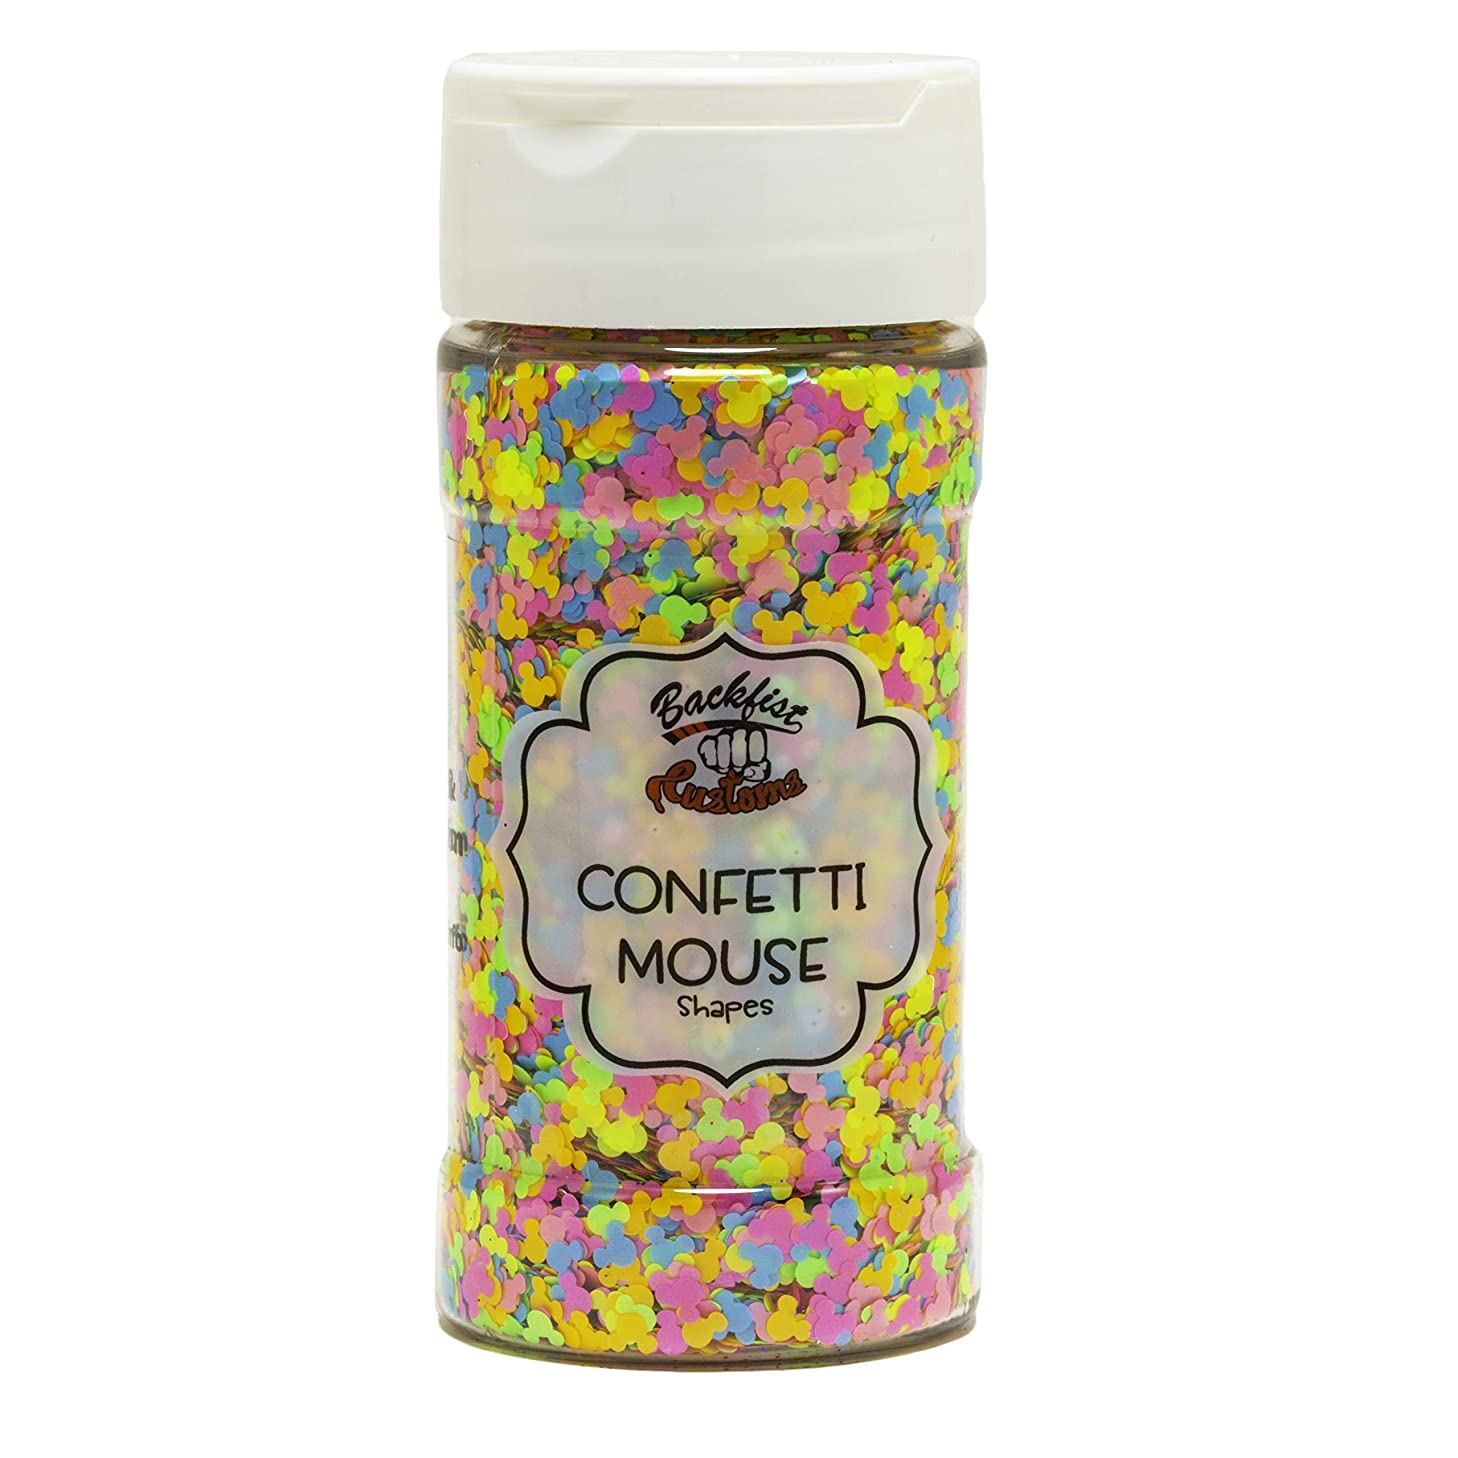 Backfist Customs Glitter Confetti Mouse Premium Polyester Glitter Multi Purpose Dust Powder 4oz for use with tumblers Slime Arts & Crafts Wine Glass Decoration Weddings Cards Flowers Cosmetic Face